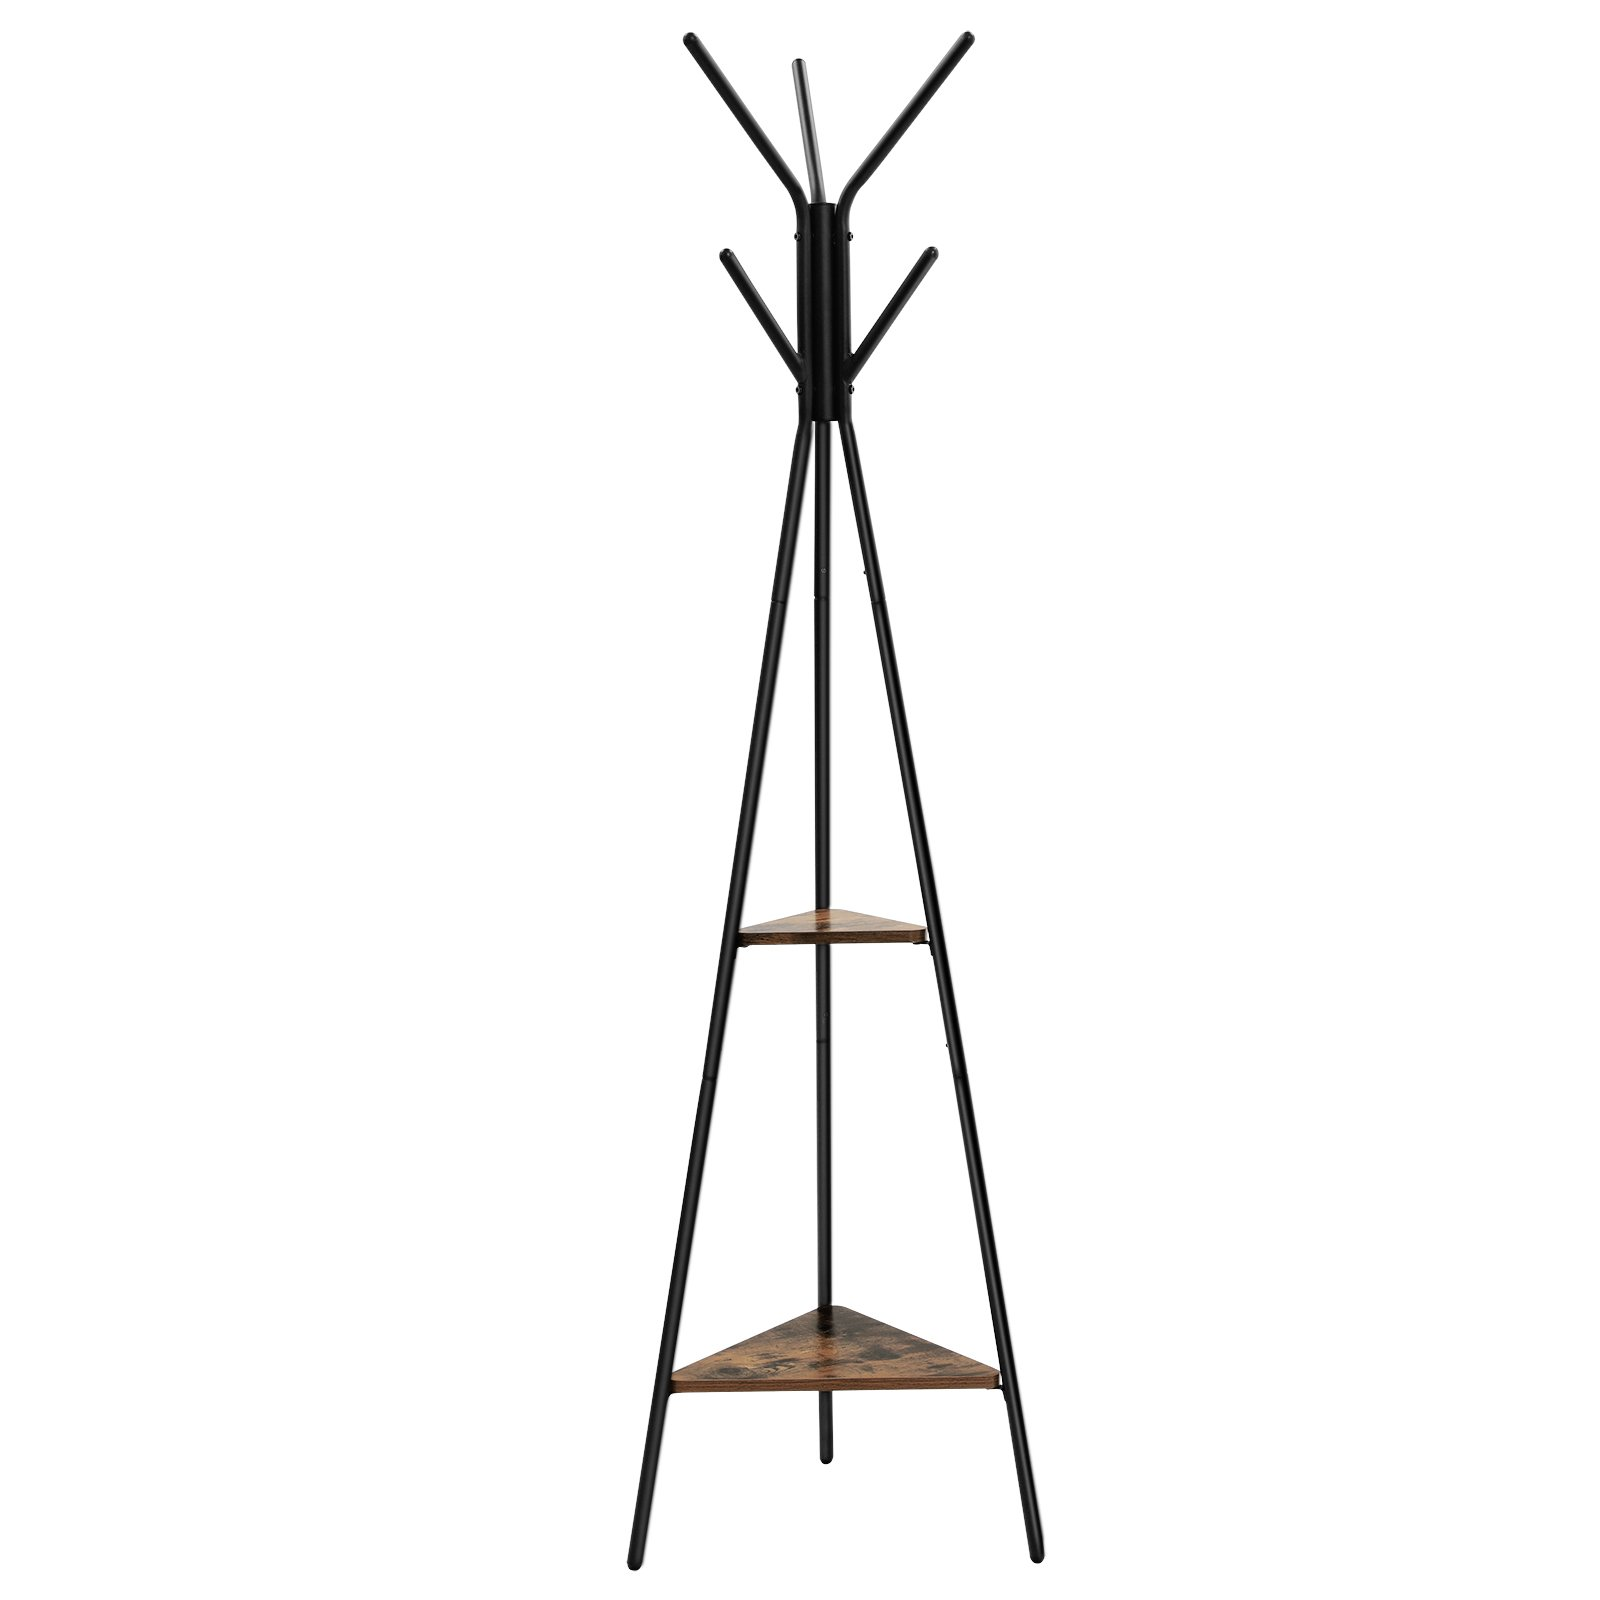 SONGMICS Coat Rack Stand, Coat Tree, Hall Tree Free Standing, Industrial Style, with 2 Shelves, for Clothes, Hat, Bag, Black, Vintage, URCR16BX by SONGMICS (Image #1)